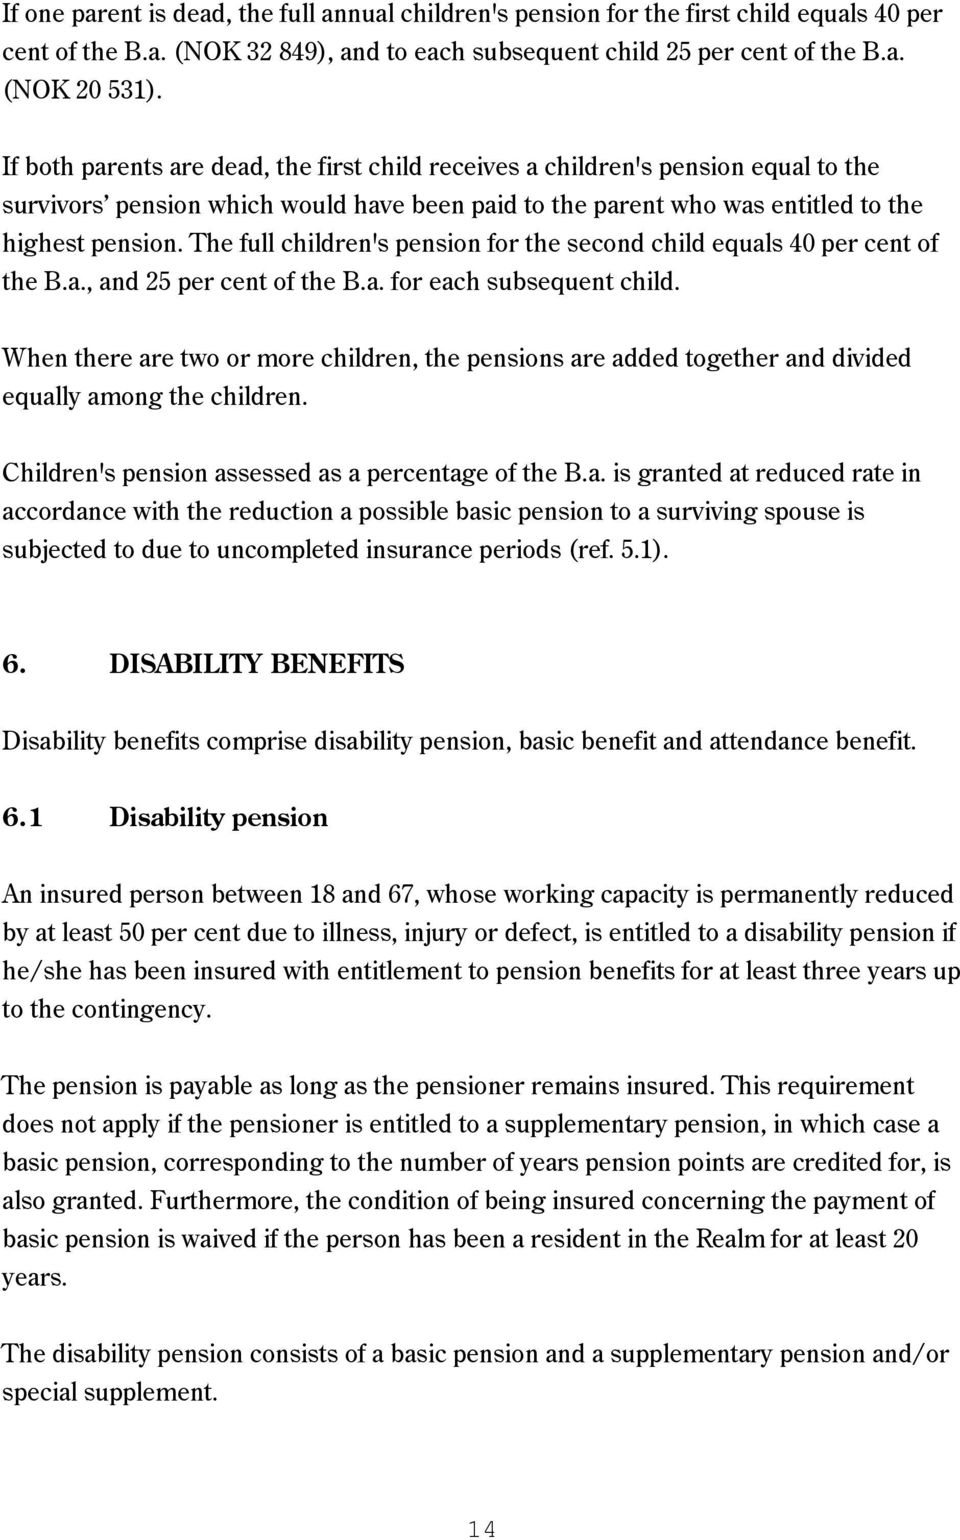 The full children's pension for the second child equals 40 per cent of the B.a., and 25 per cent of the B.a. for each subsequent child.